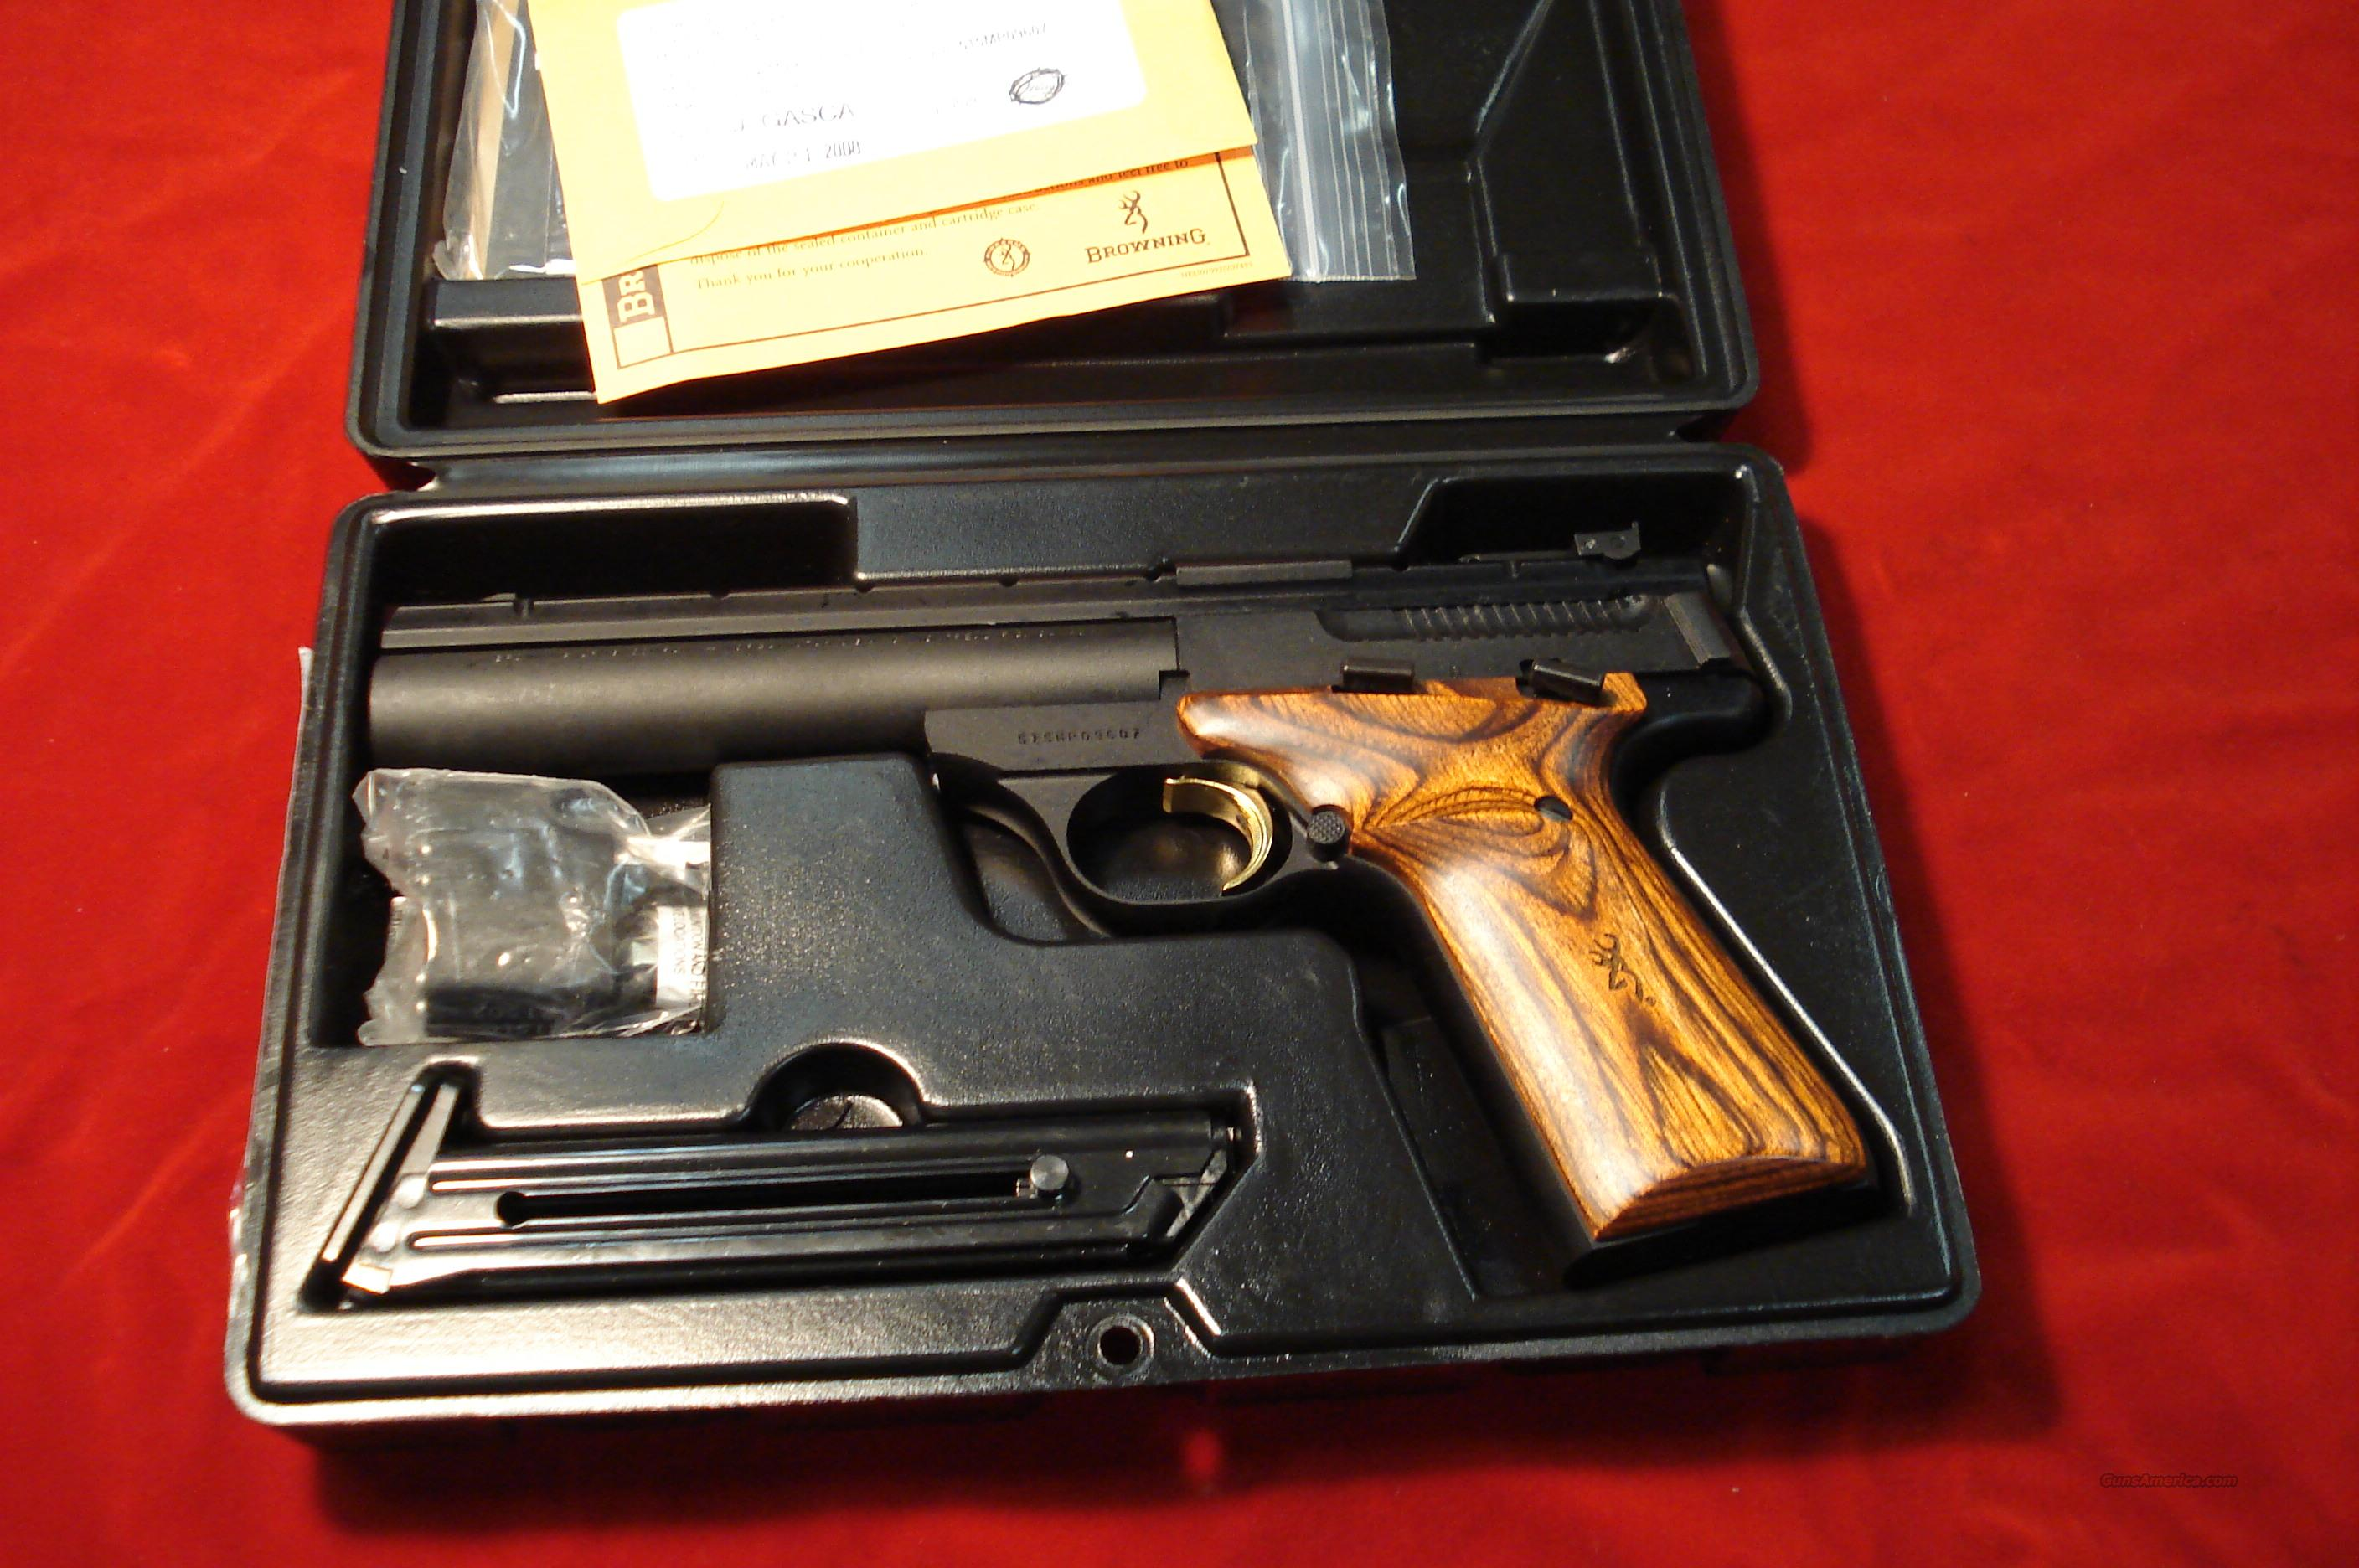 BROWNING BUCK MARK 5.5 FIELD COCOBOLO GRIP NEW   Guns > Pistols > Browning Pistols > Buckmark